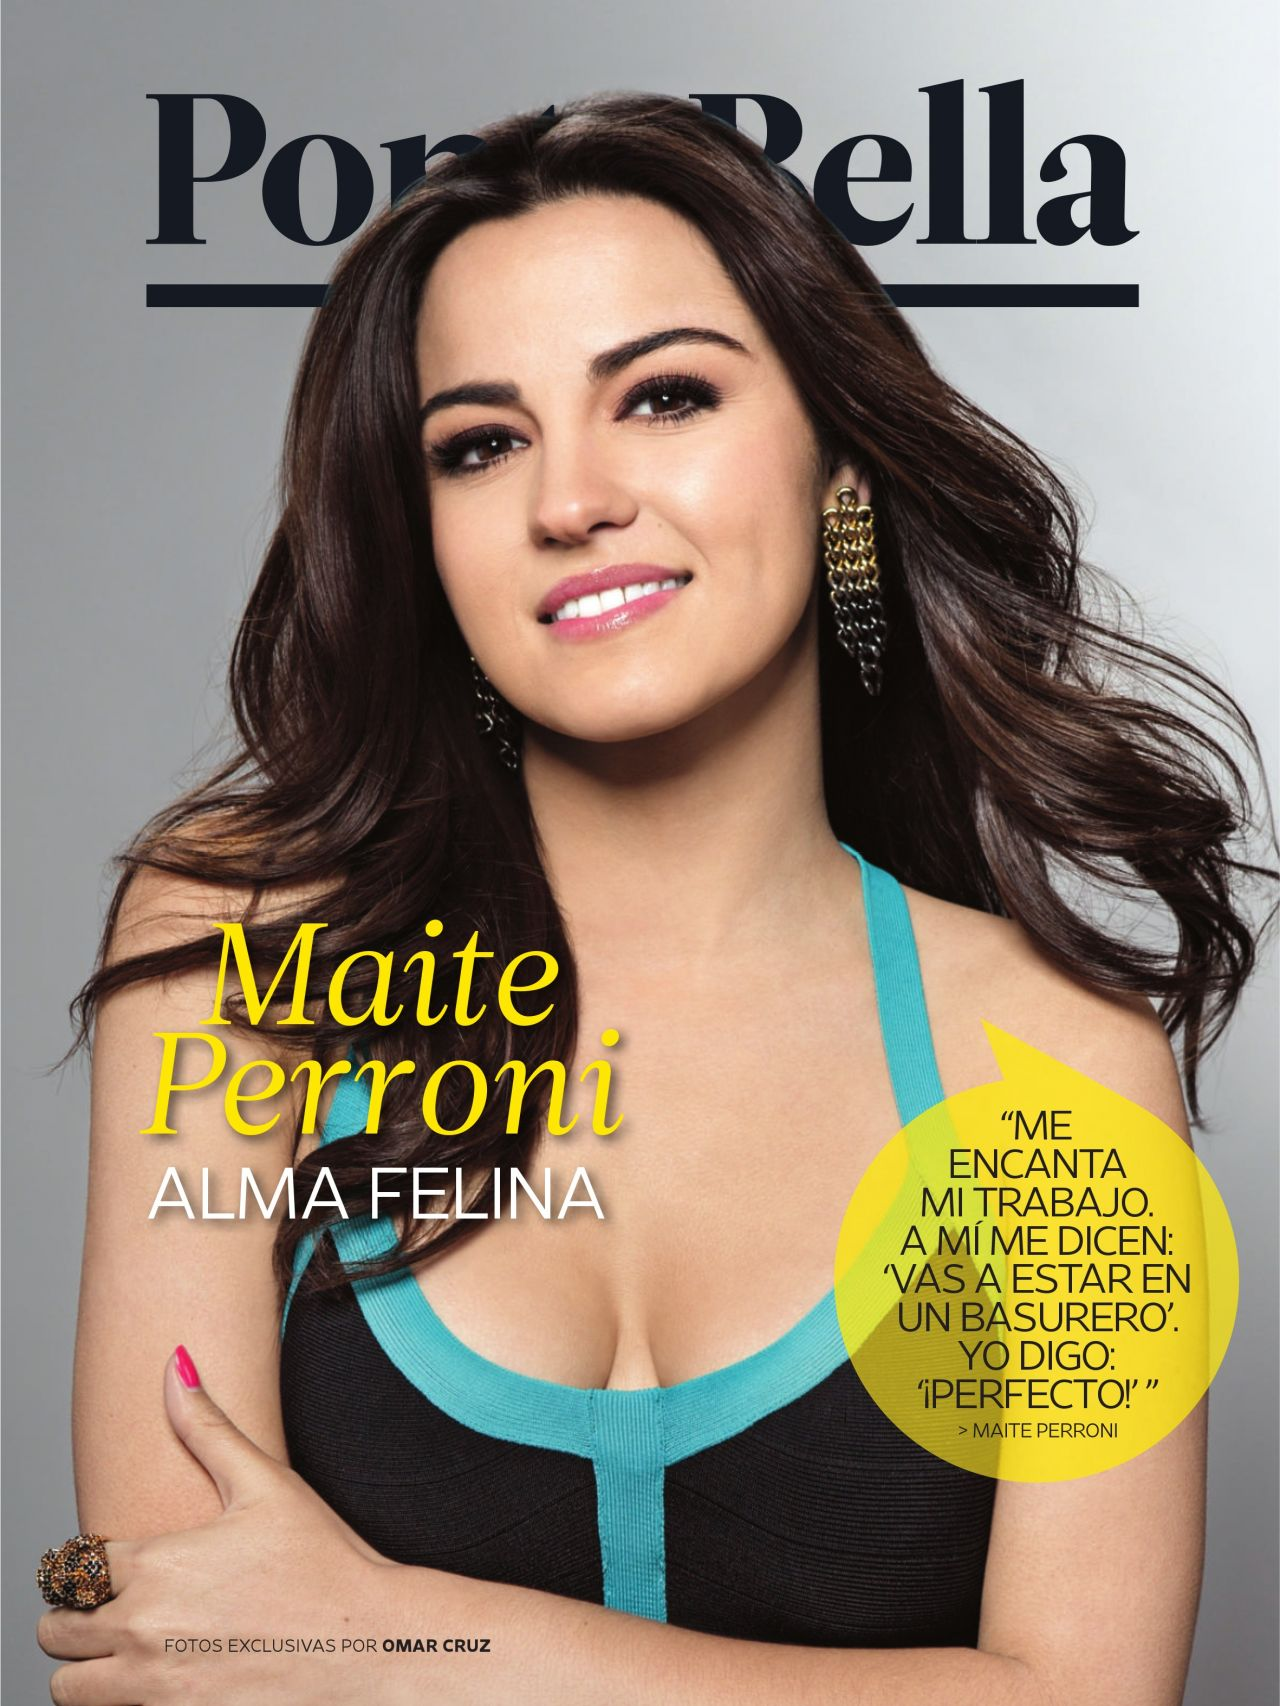 Maite Perroni - People Magazine (Spain) - August 2014 Issue